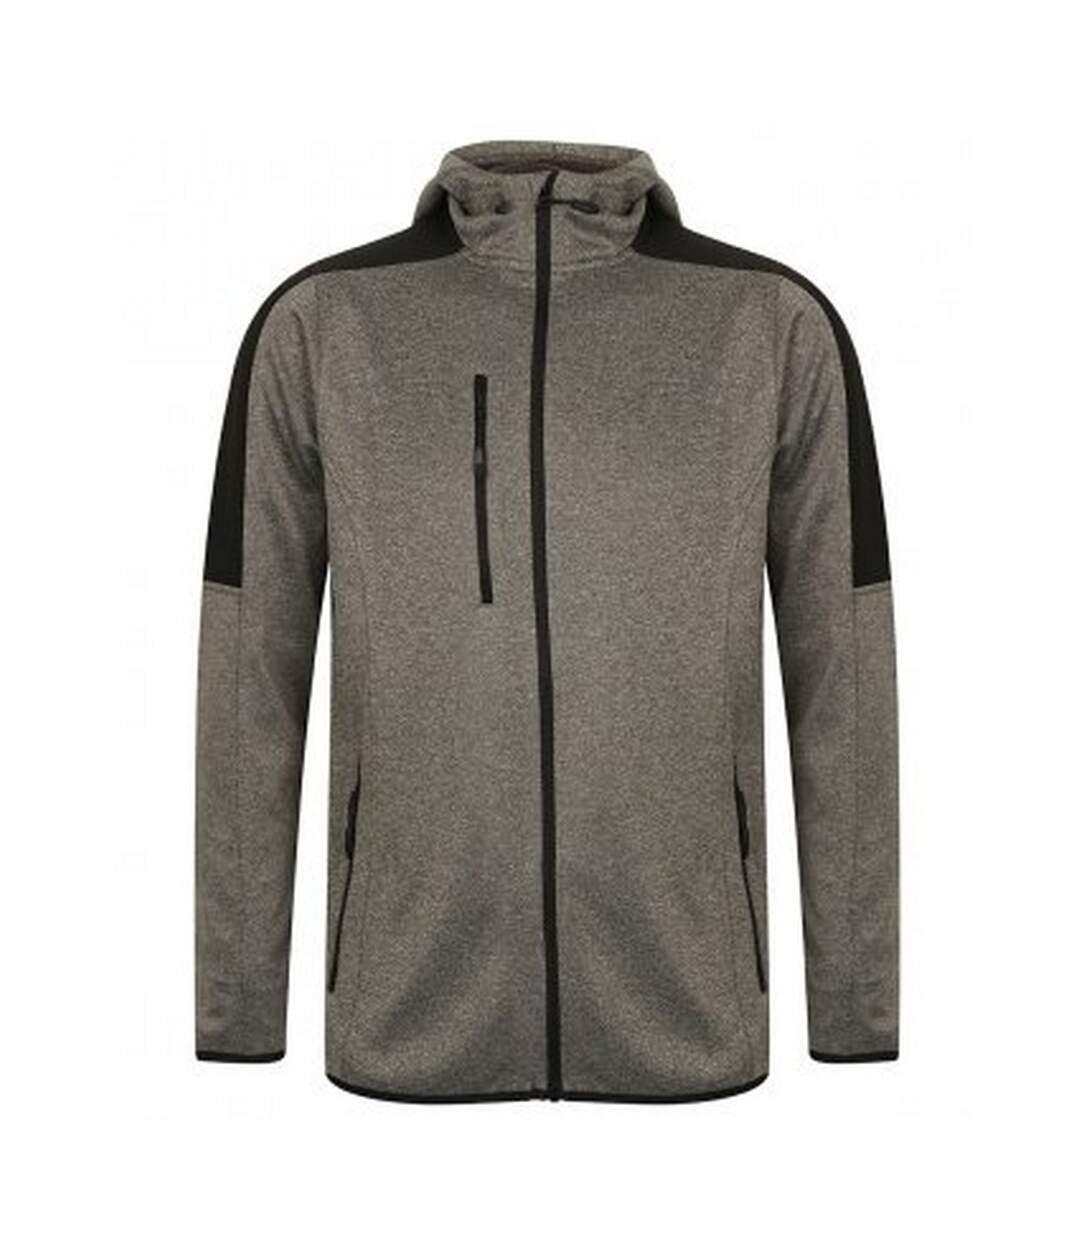 Finden & Hales Mens Active Soft Shell Jacket (Dark Grey Marl/Black) - UTPC3079